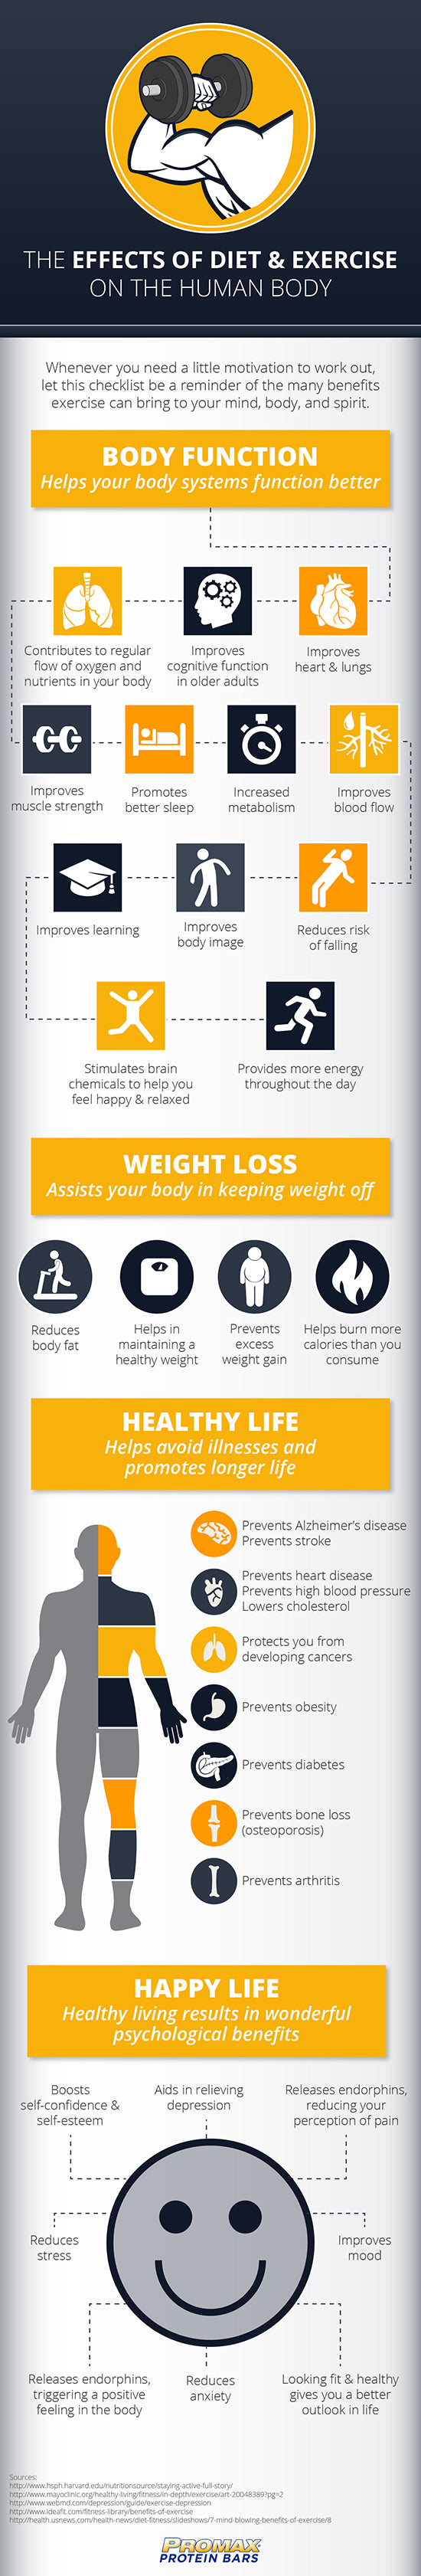 Infographic - The Effects of Diet and Exercise on the Human Body